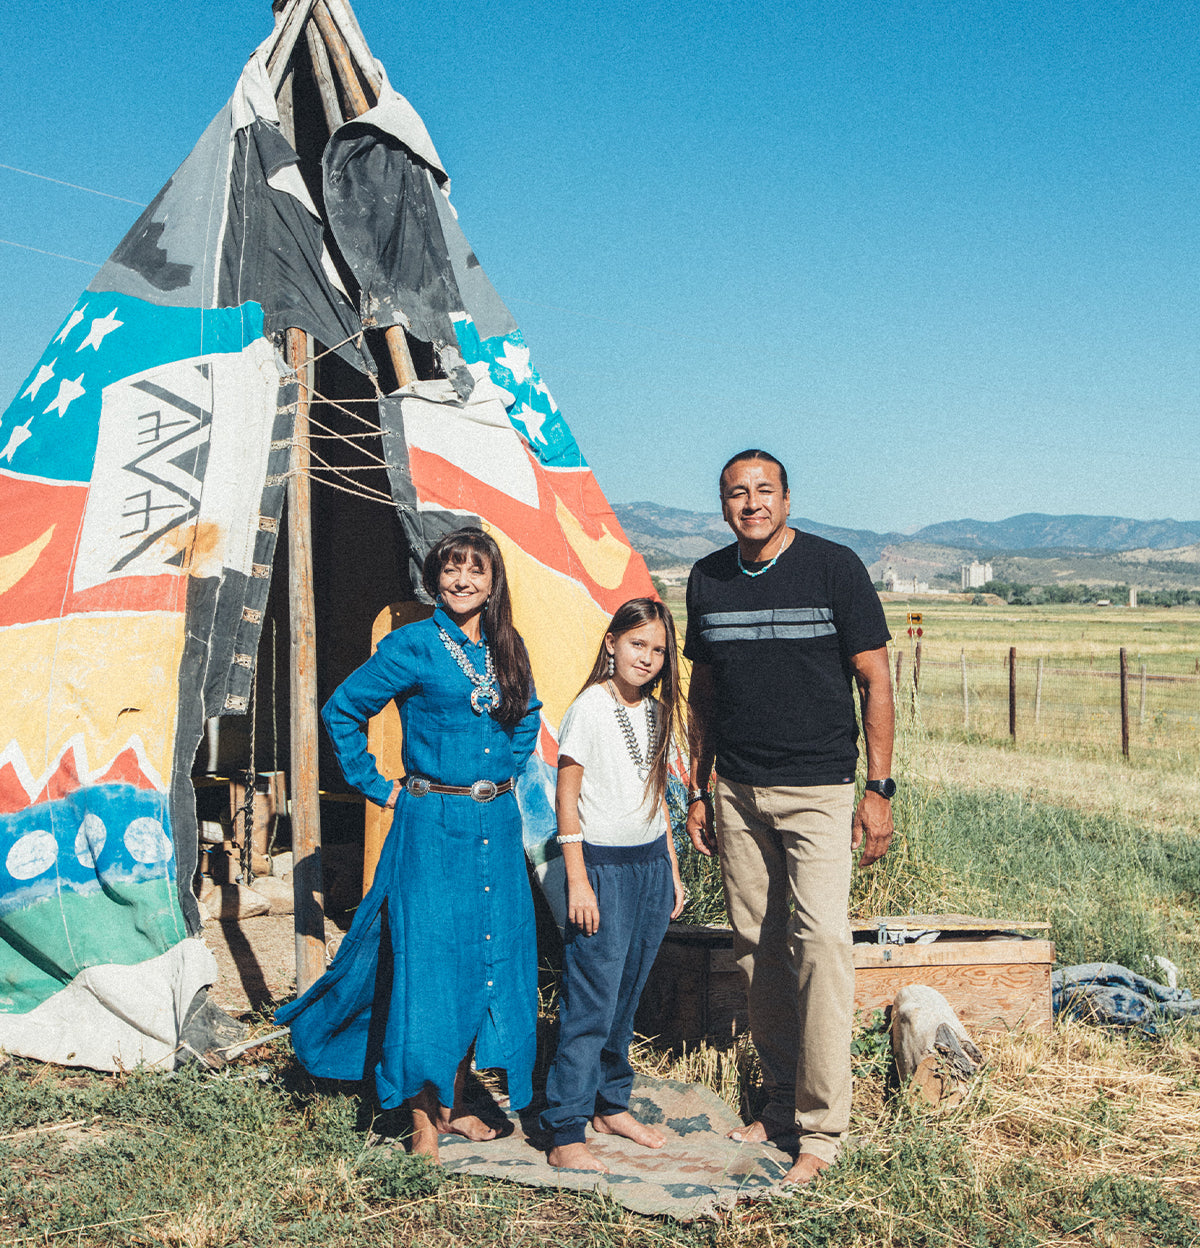 A Native American family stands in together in front of a teepee.